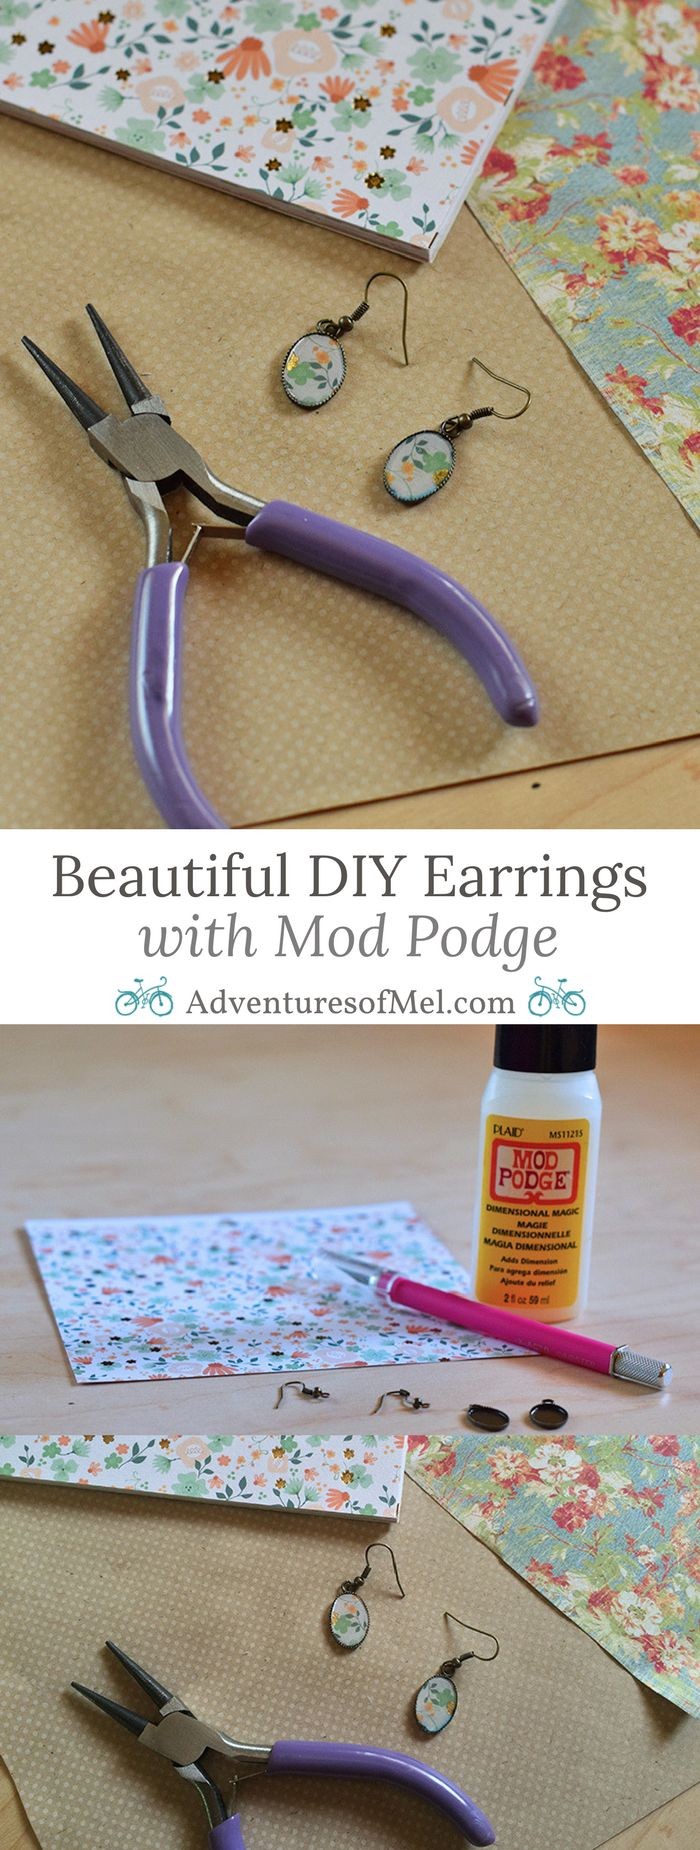 How To Use Mod Podge On Fabric And Furniture | Tutorial